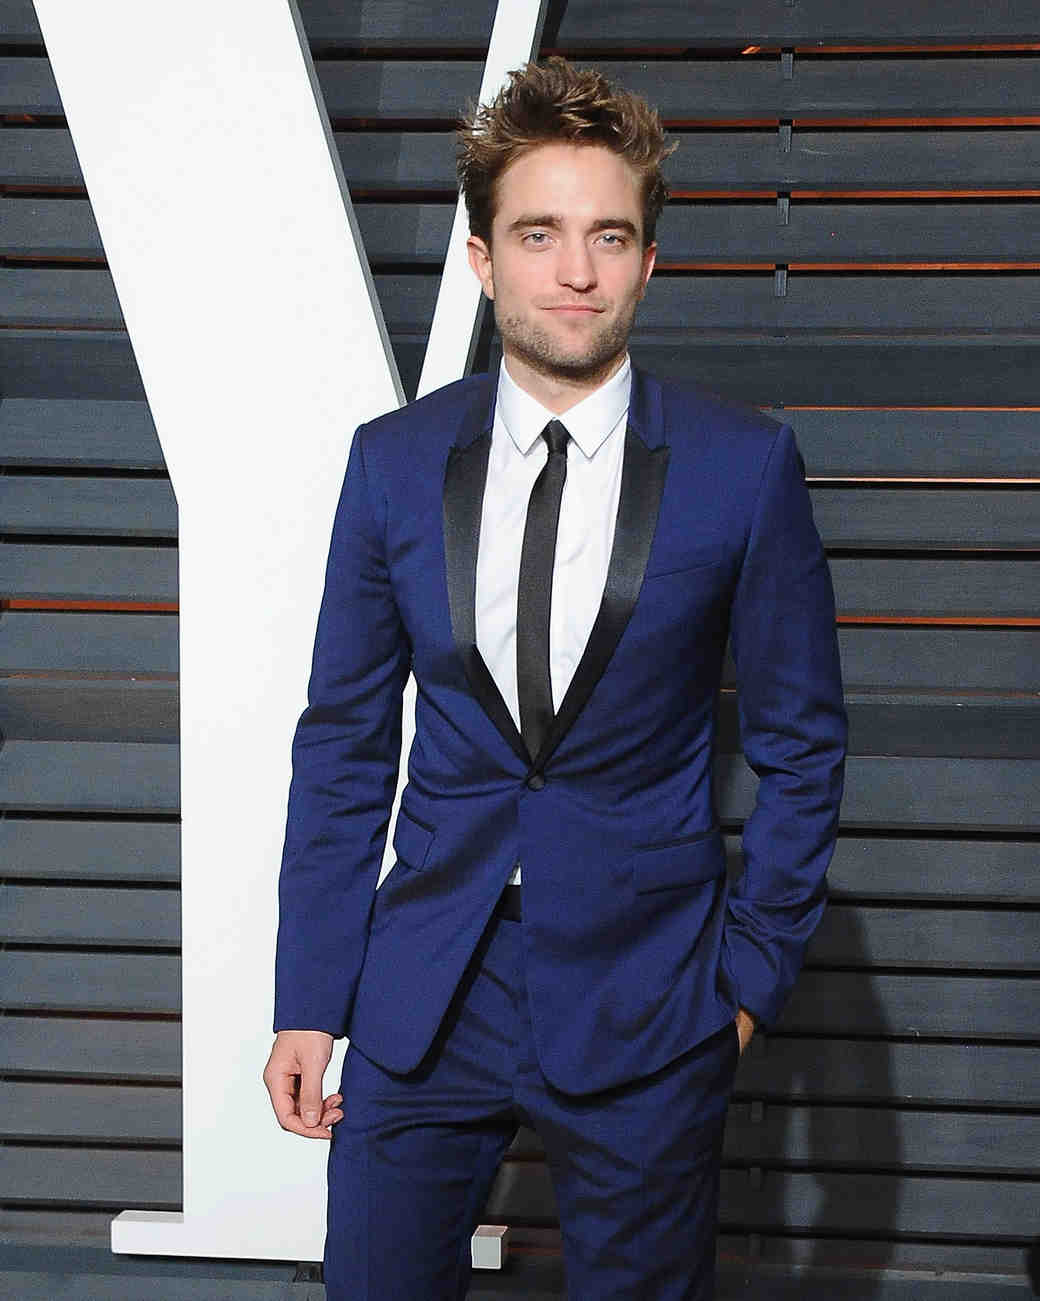 robert-pattinson-fka-twigs-dior-homme-suit-0415.jpg